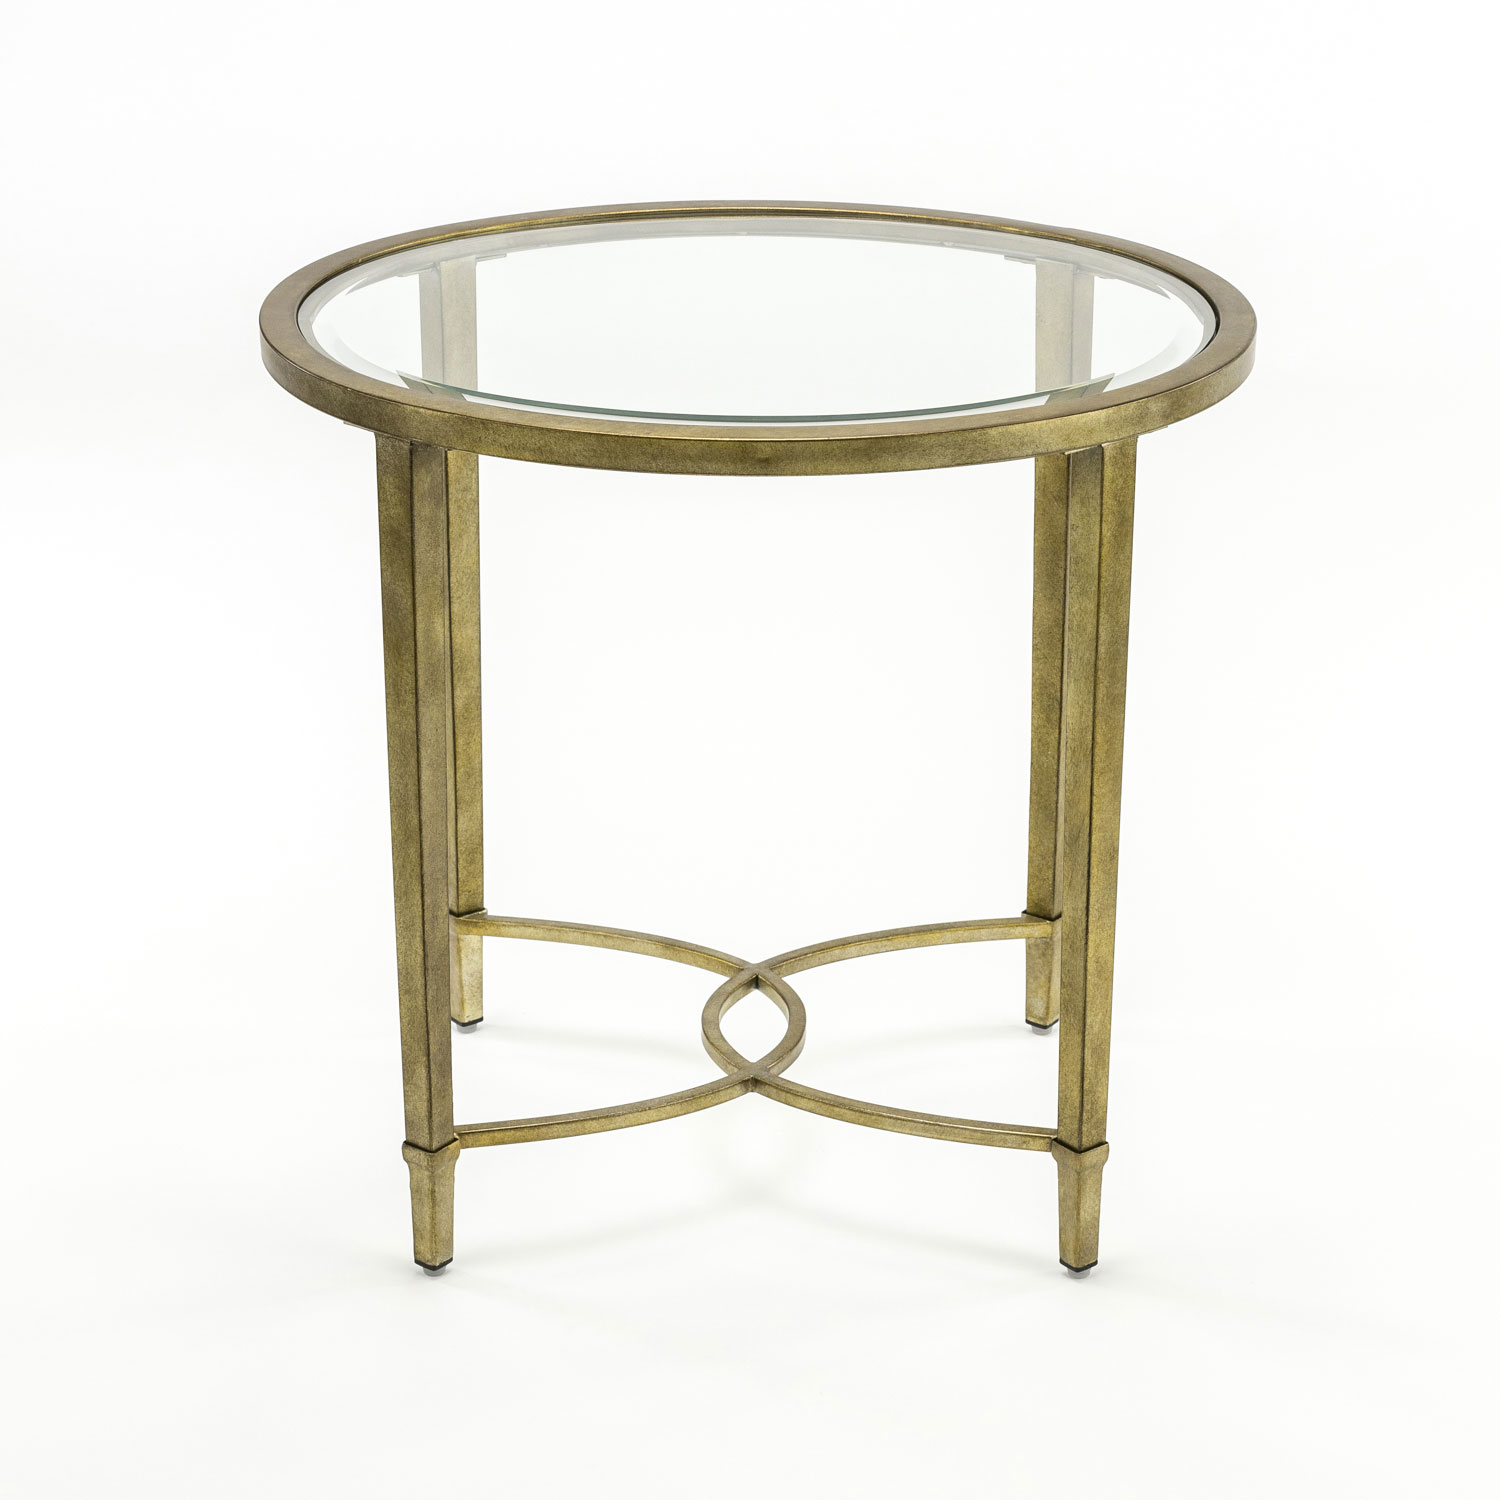 first linden antique silver and metal oval end table clarissa accent hover zoom white acrylic nest tables outdoor occasional adirondack chairs modern lamp designs black coffee